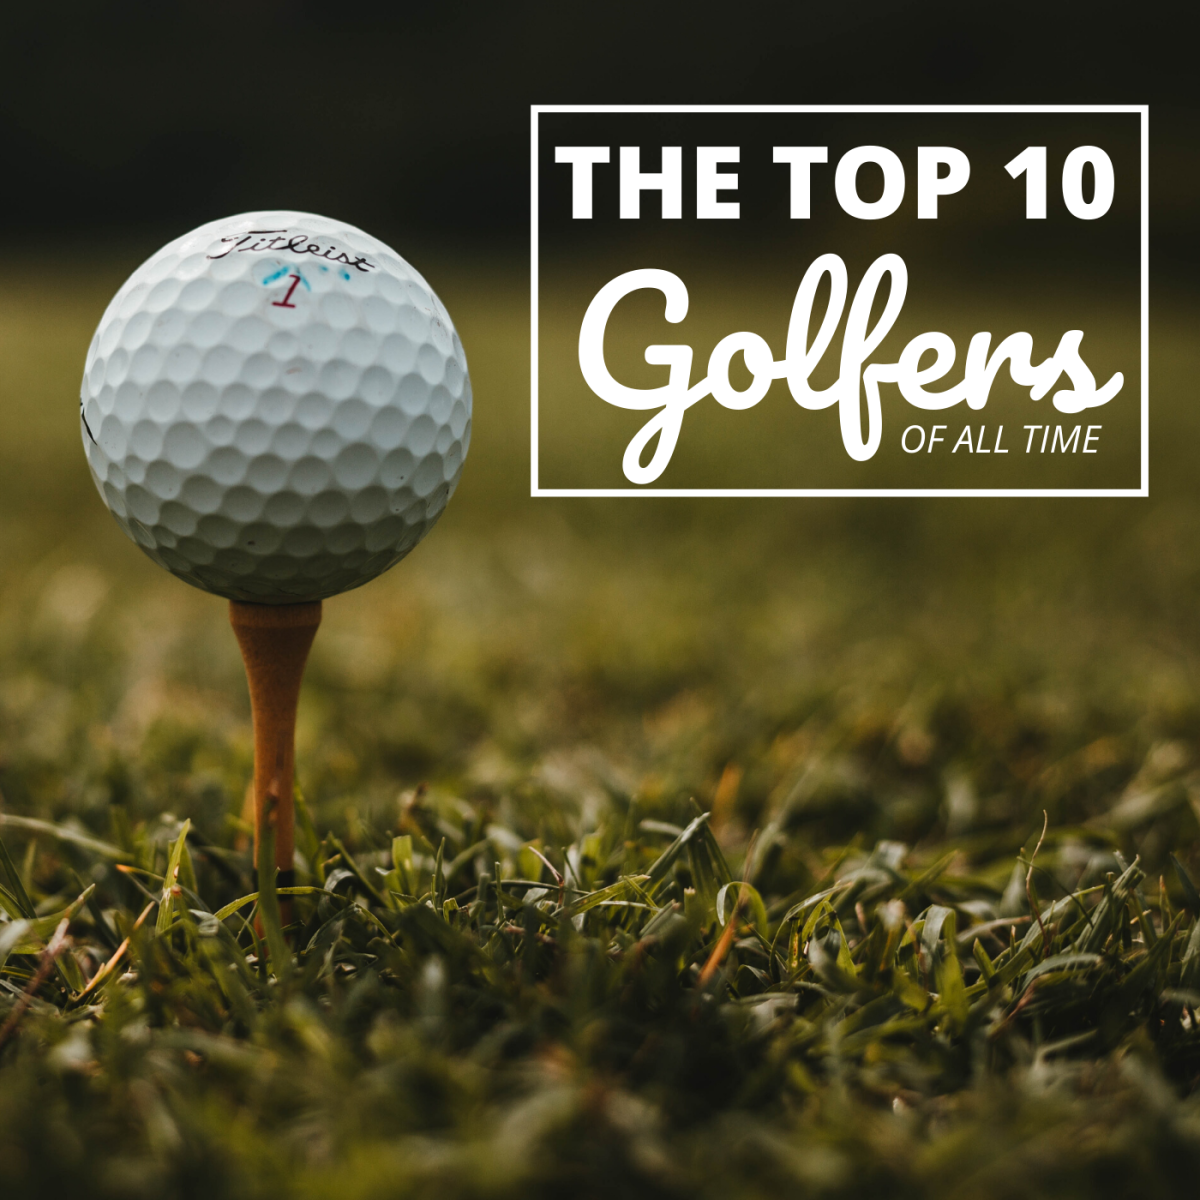 Who are the best golfers of all time?